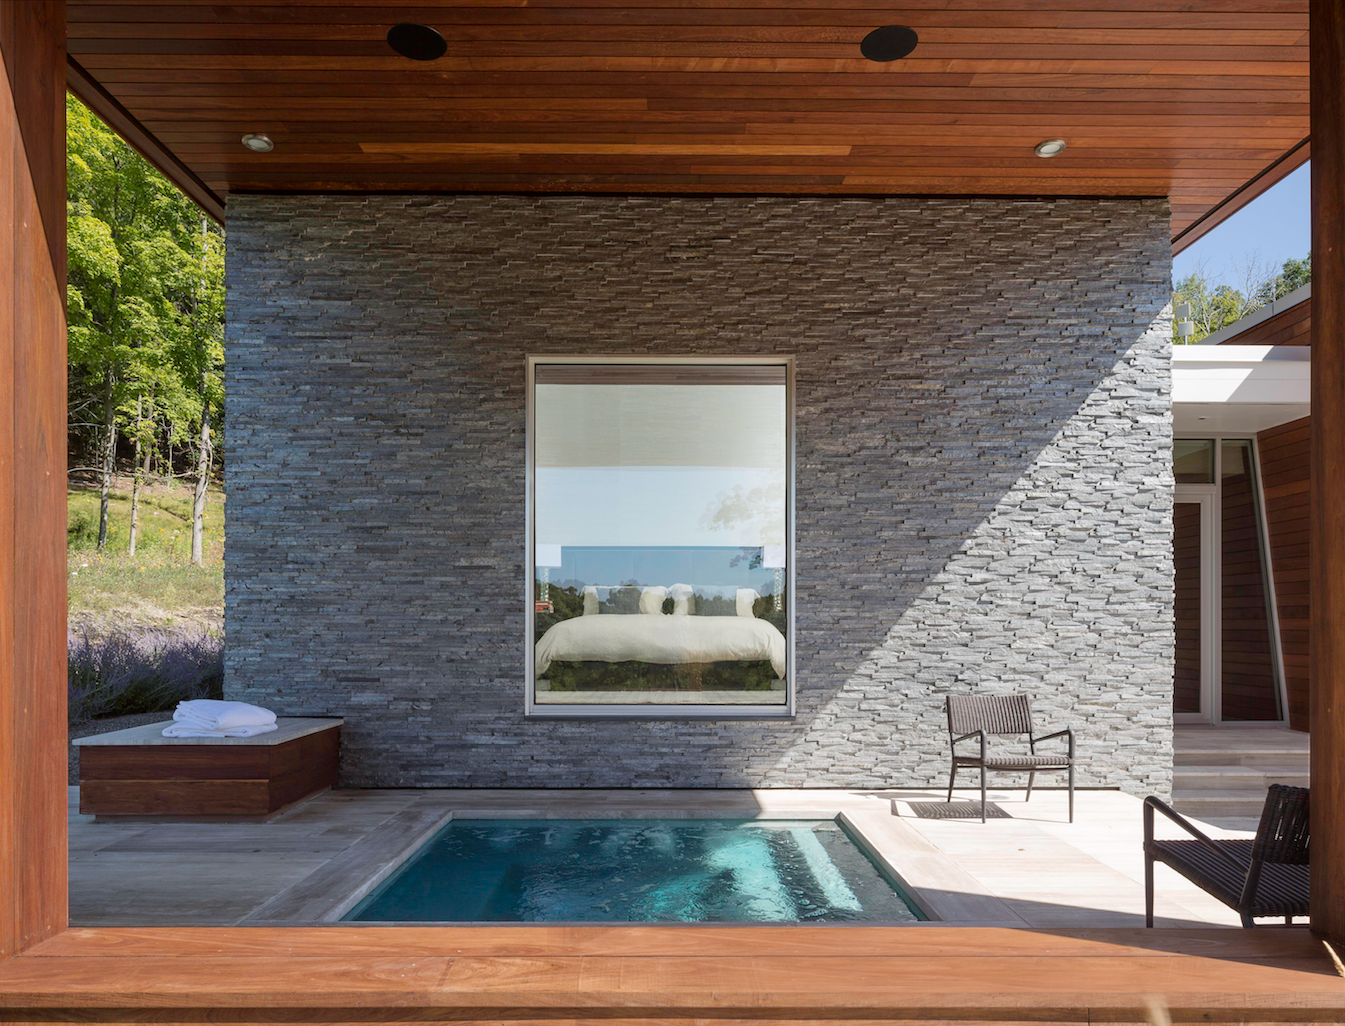 Outdoor, Small Pools, Tubs, Shower, and Wood Patio, Porch, Deck  Taghkanic House by Hariri & Hariri Architecture